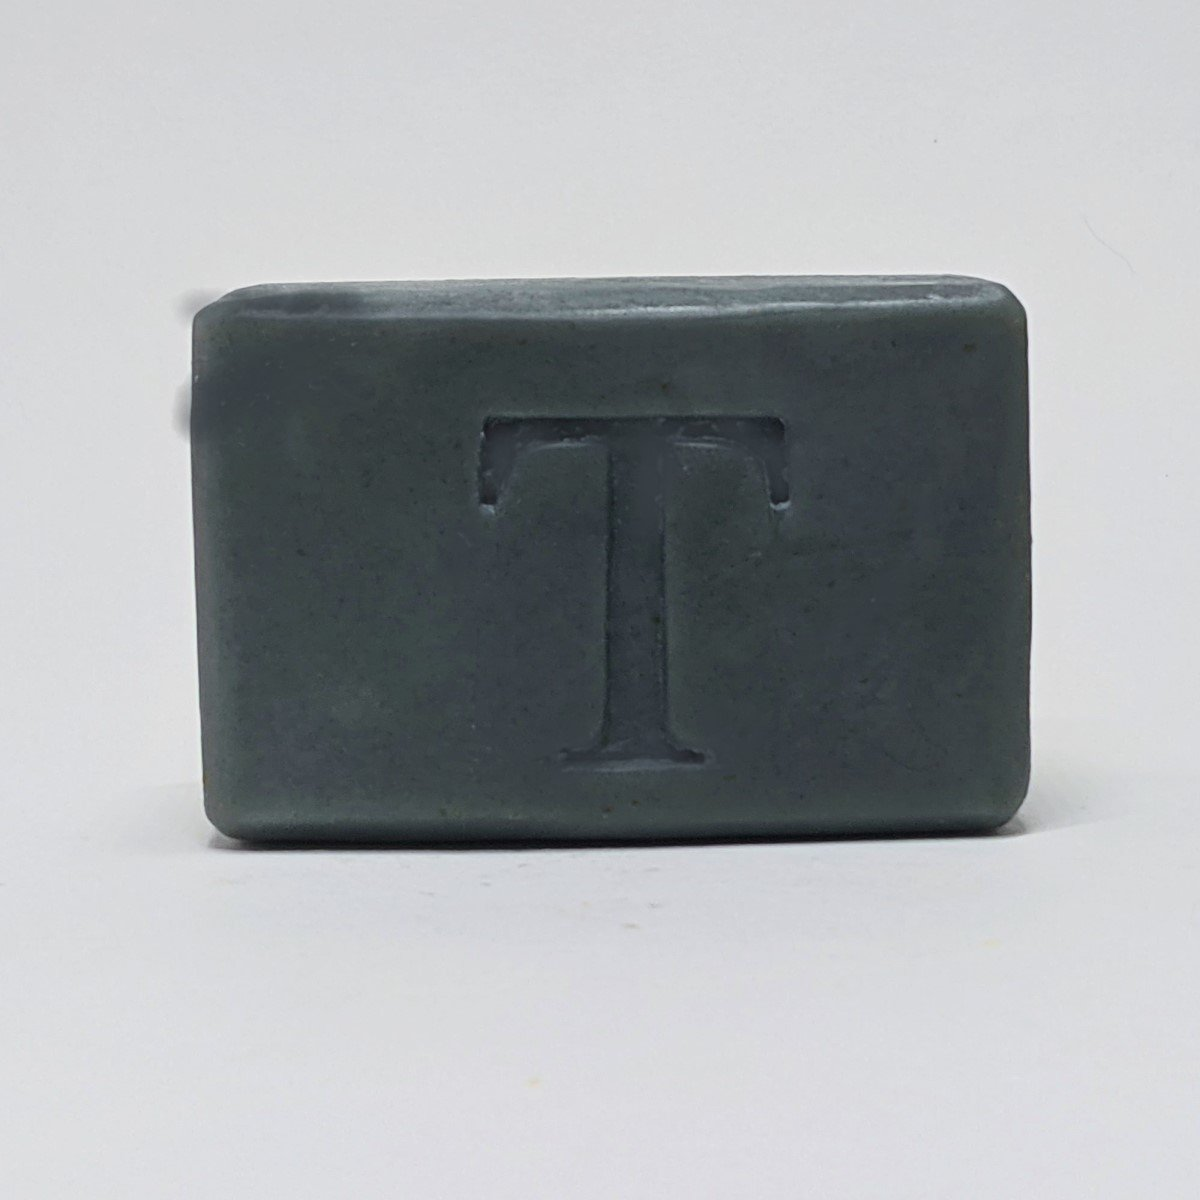 LumberJack Musk Goat's Milk Soap Bar. All Natural with Activated Charcoal, Shea Butter, and Essential Oils. - Thompson's Luxury Soap